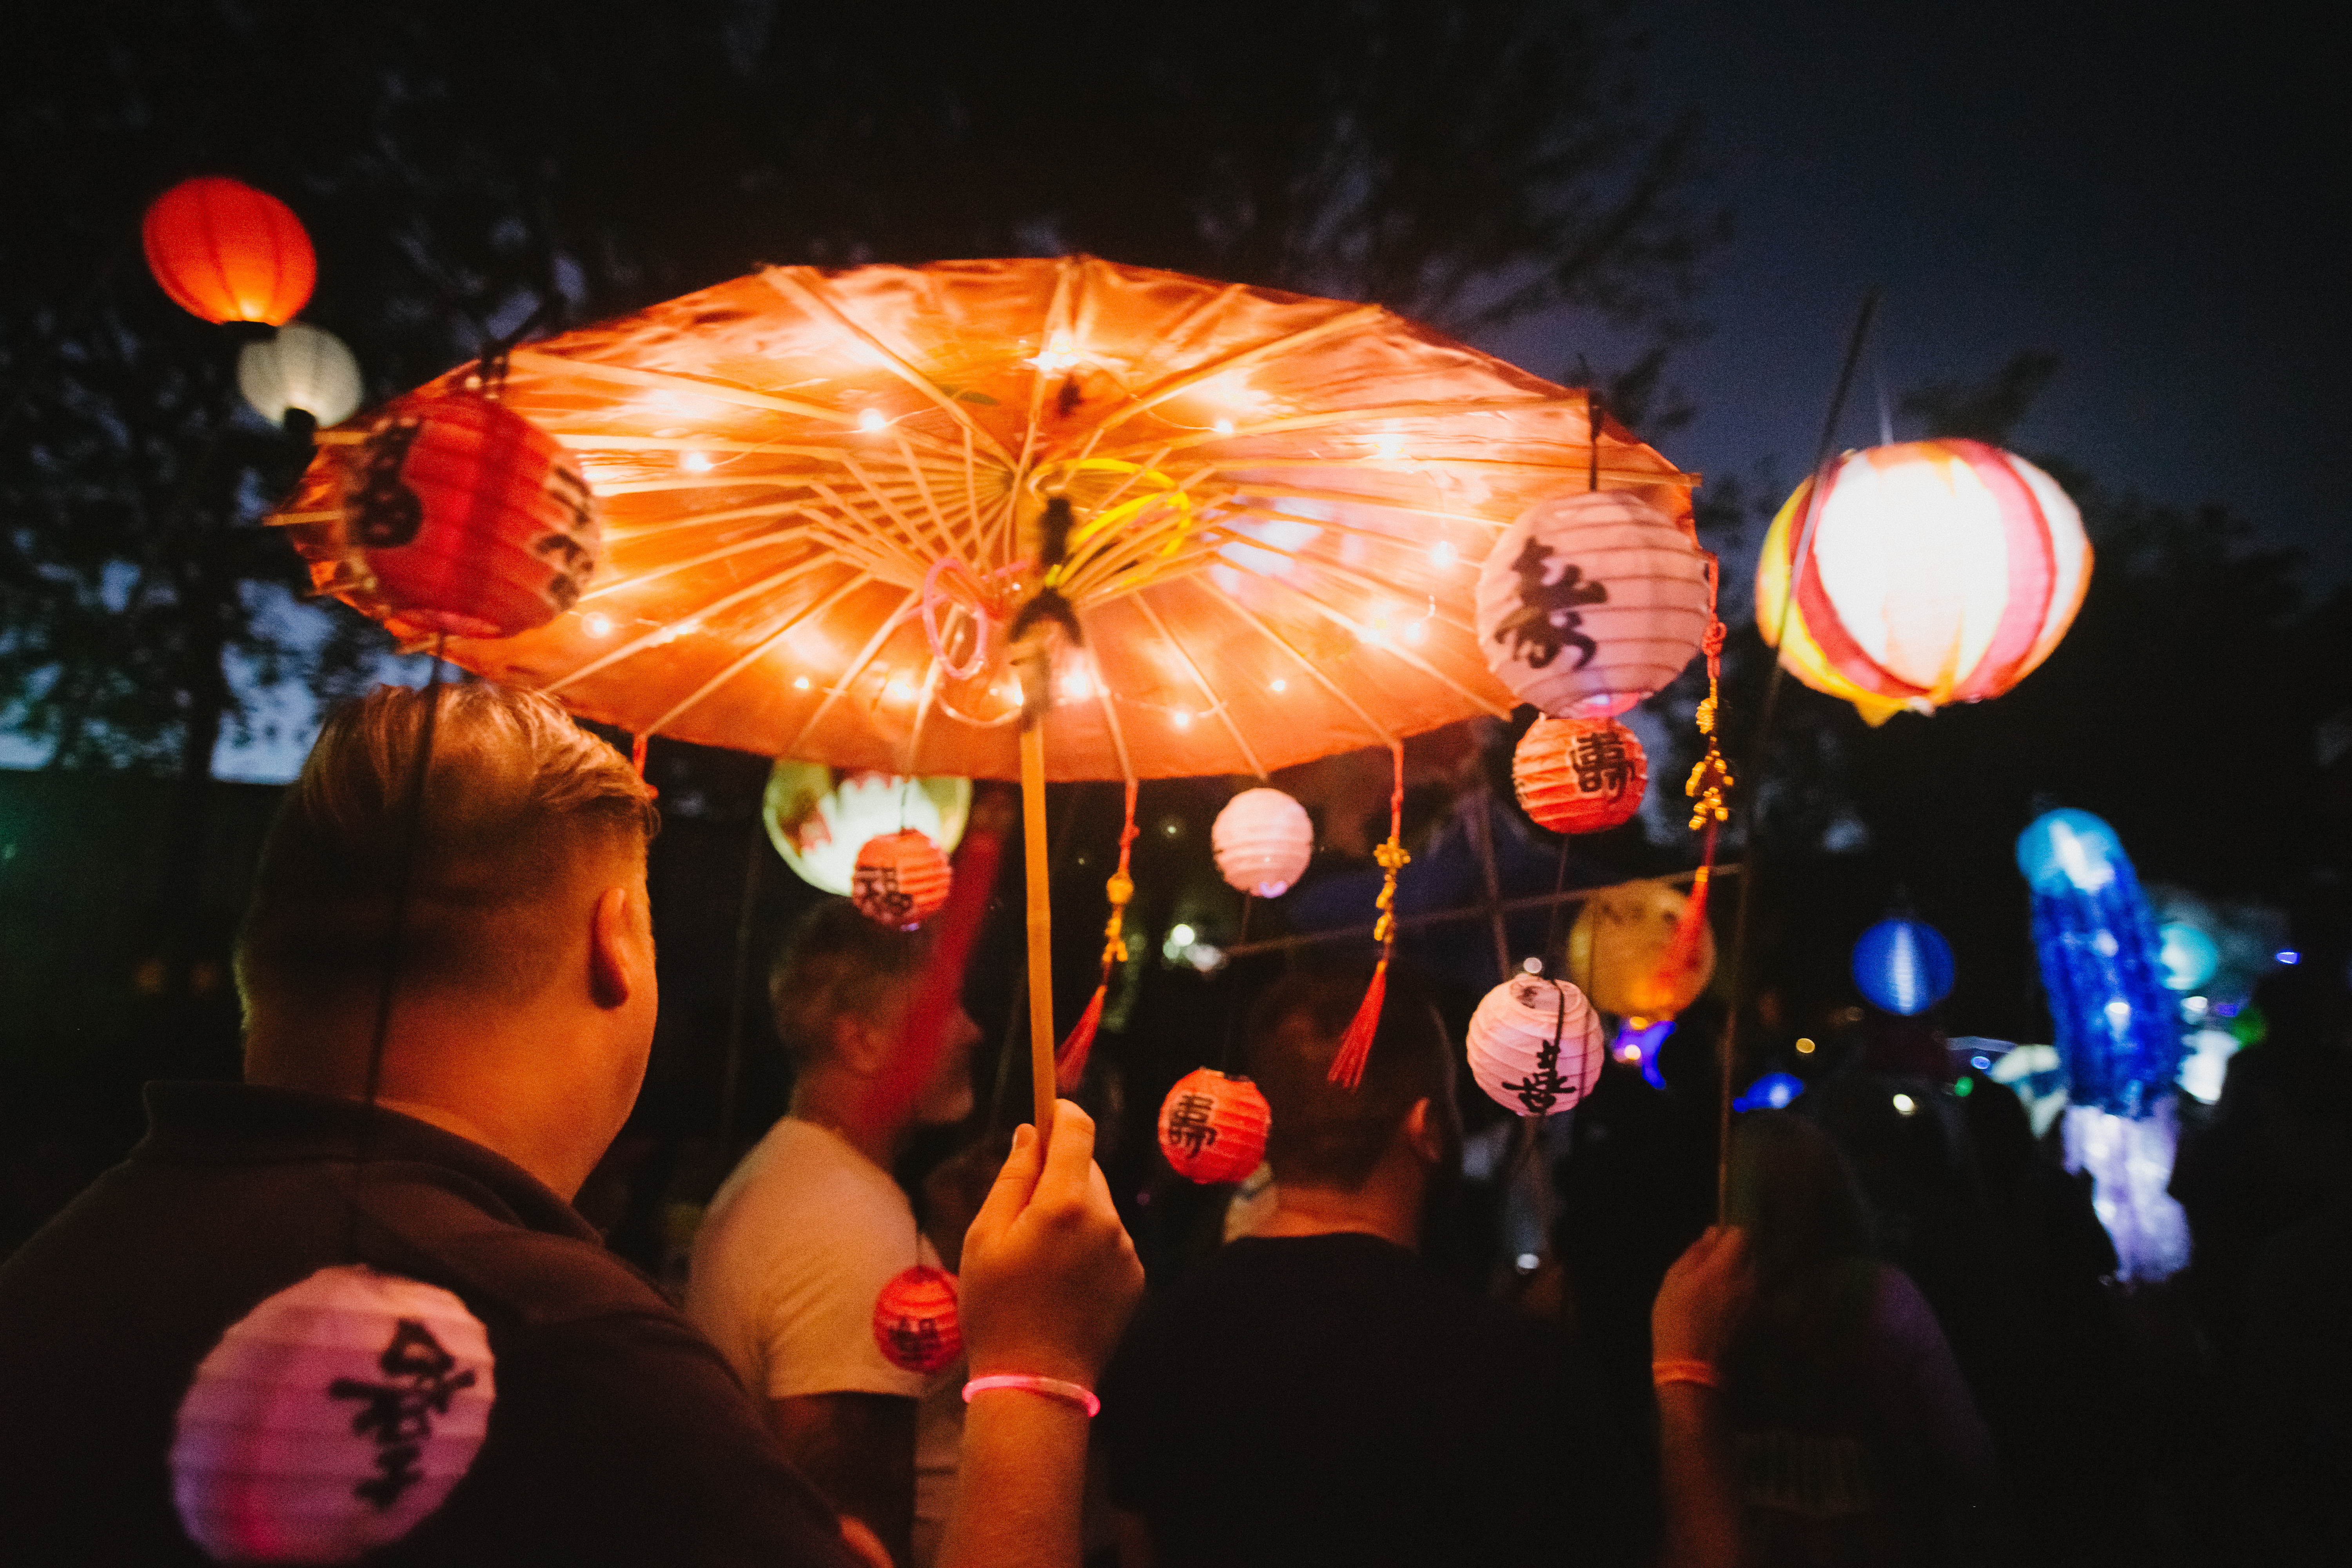 Paper lanterns are some of the most popular illuminations along the parade route.